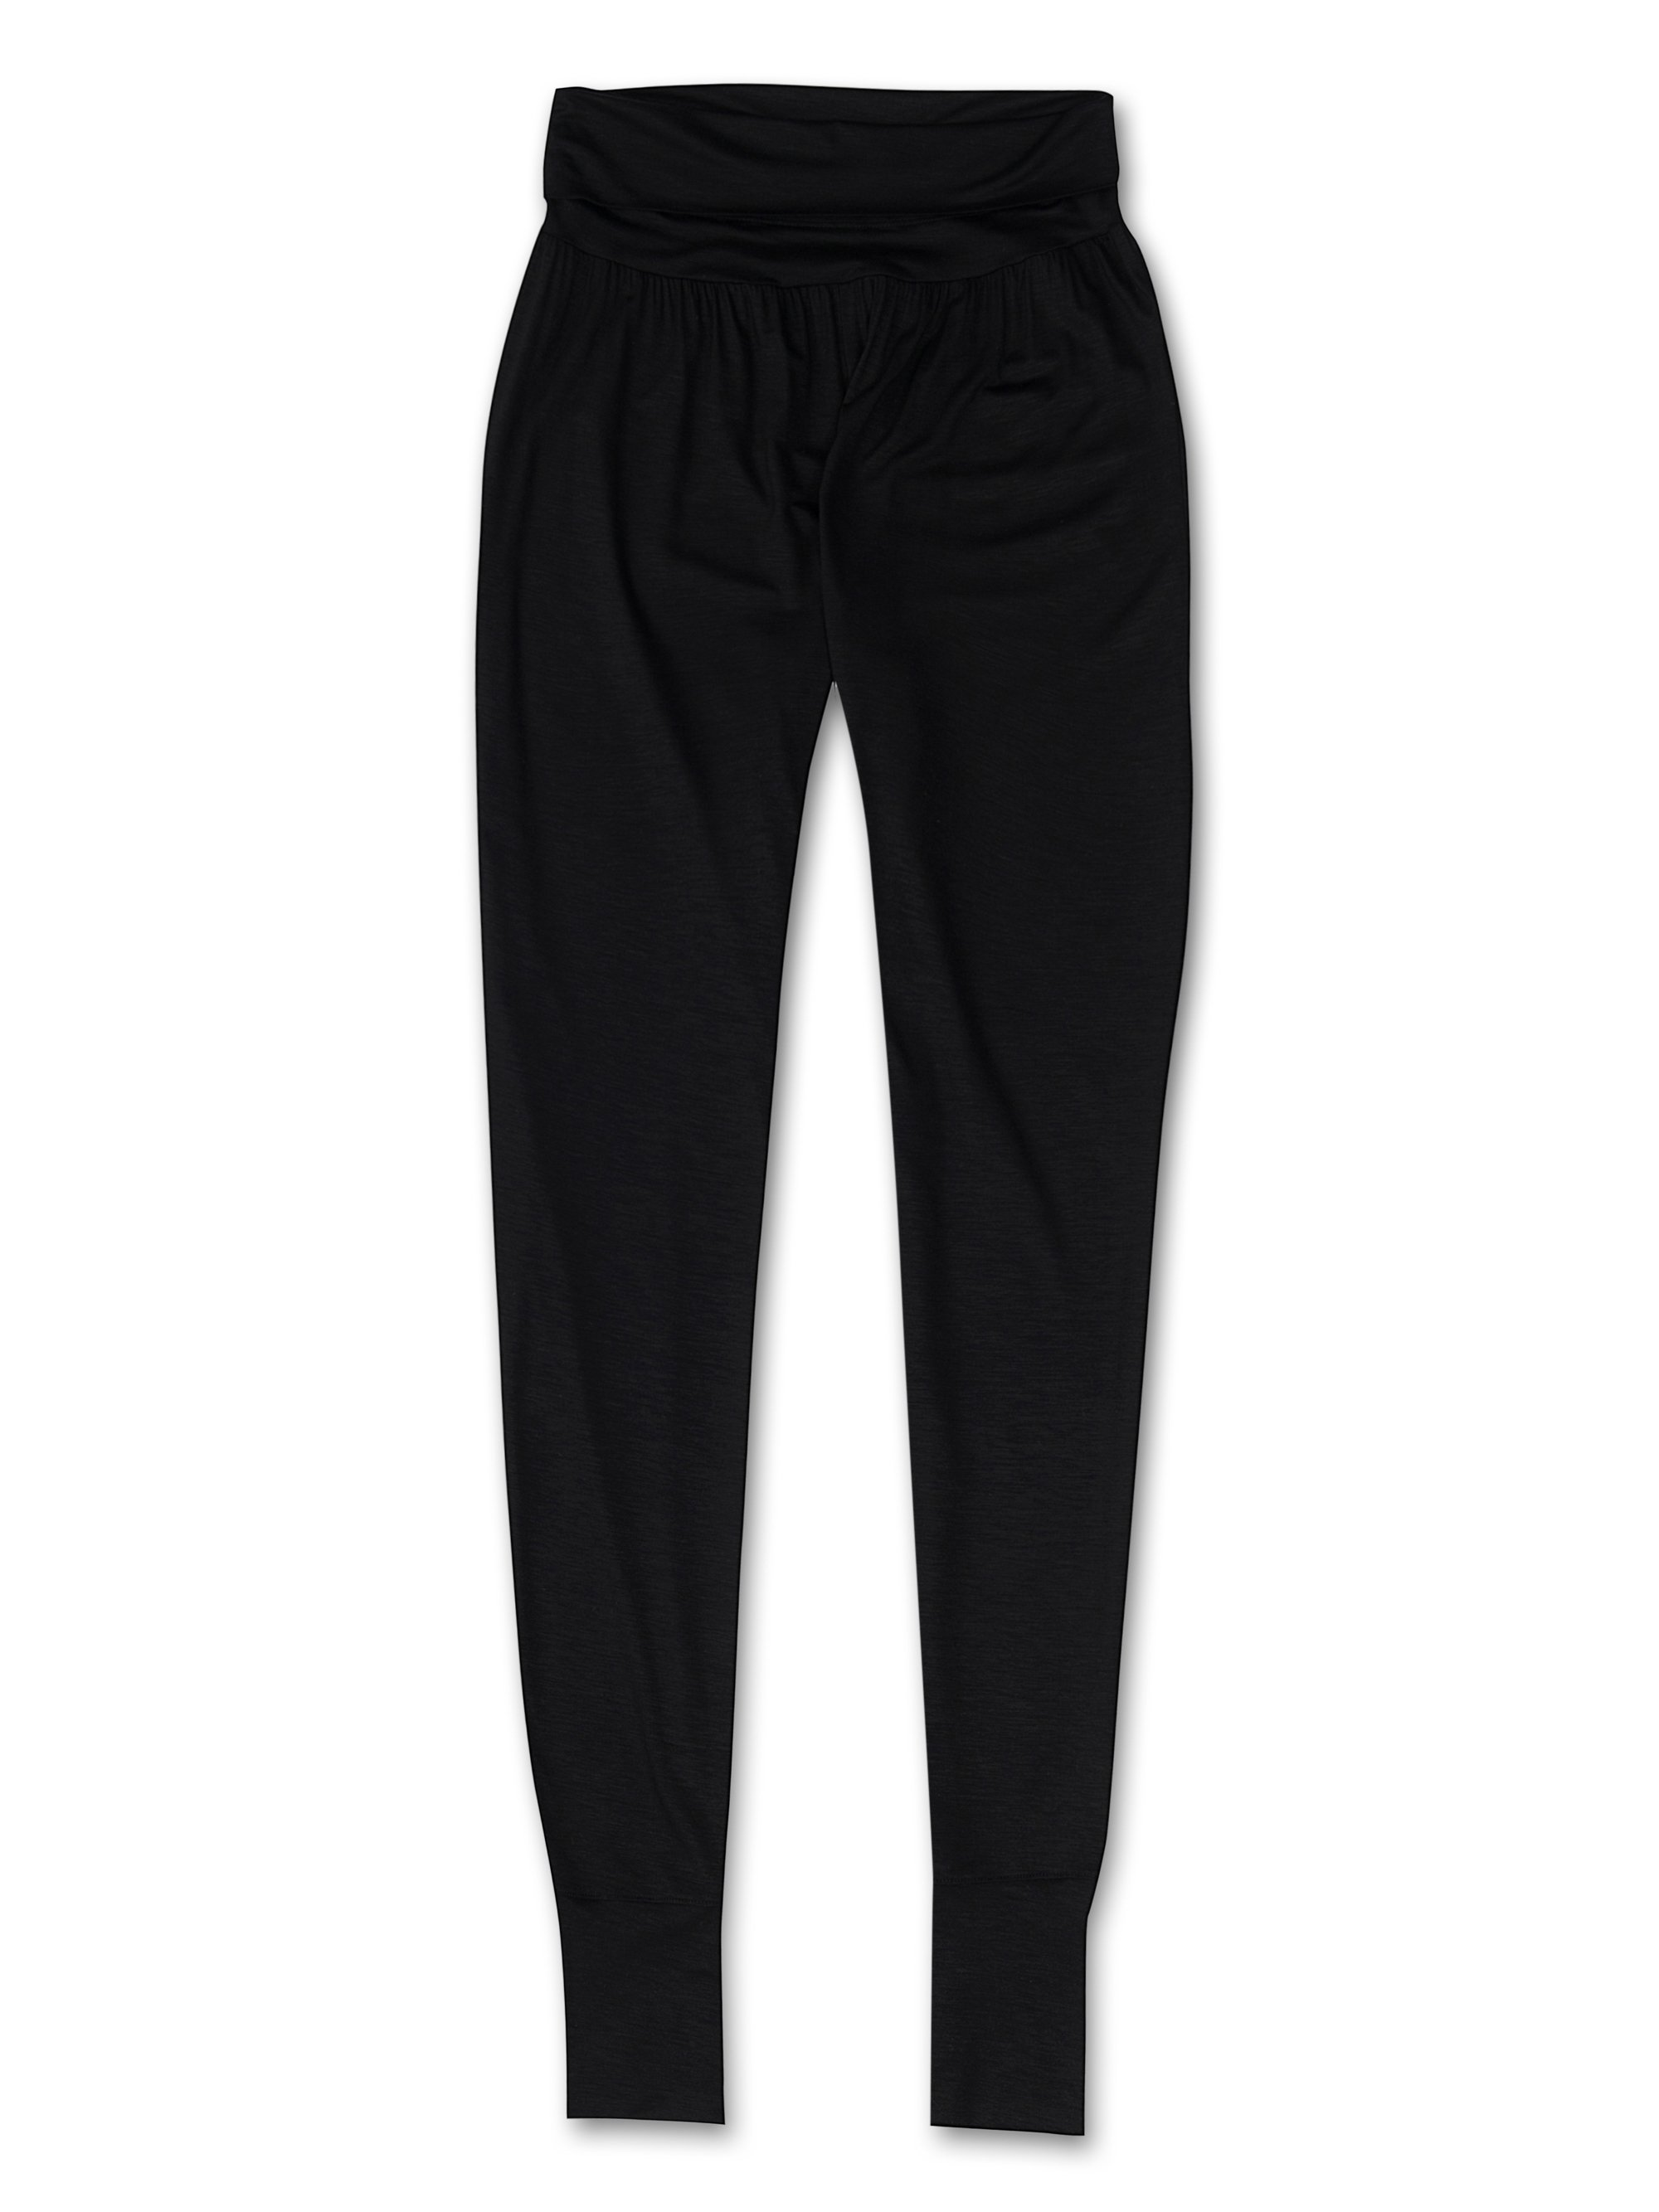 Women's Tapered Lounge Trousers Carla Micro Modal Black